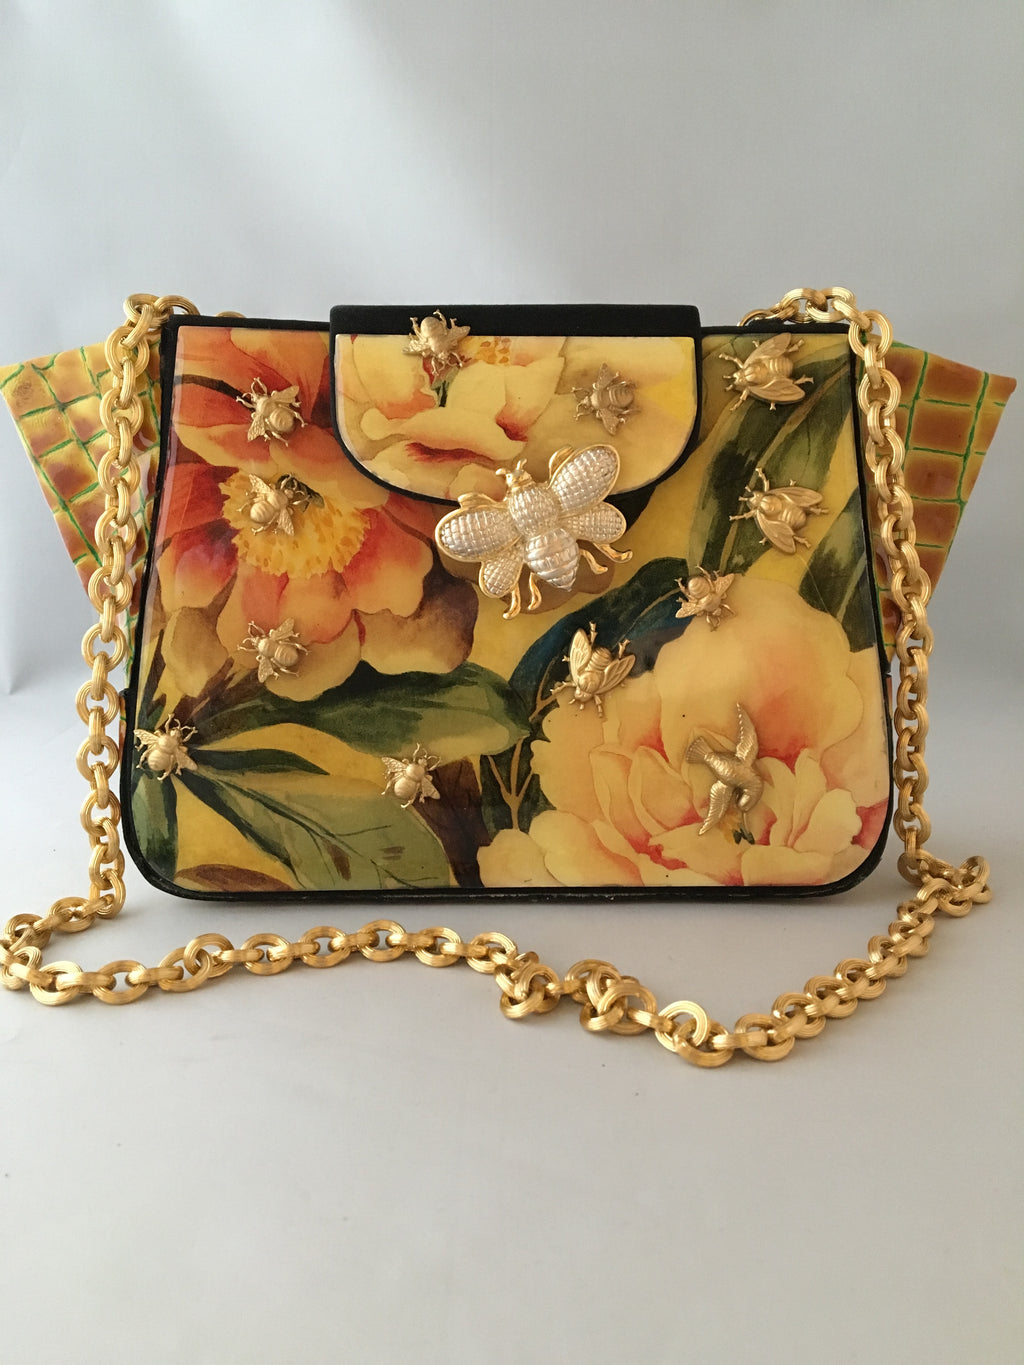 "Giraffe and geraniums combine together so well in this art-deco vintage style purse from the 1970s. The vintage golden chain adds to its charm. We especially love how the giraffe print leather forms its unusually prominent gussets.   Dimensions - Height 8""; Width 9""; Depth 4""; Handle 14"""